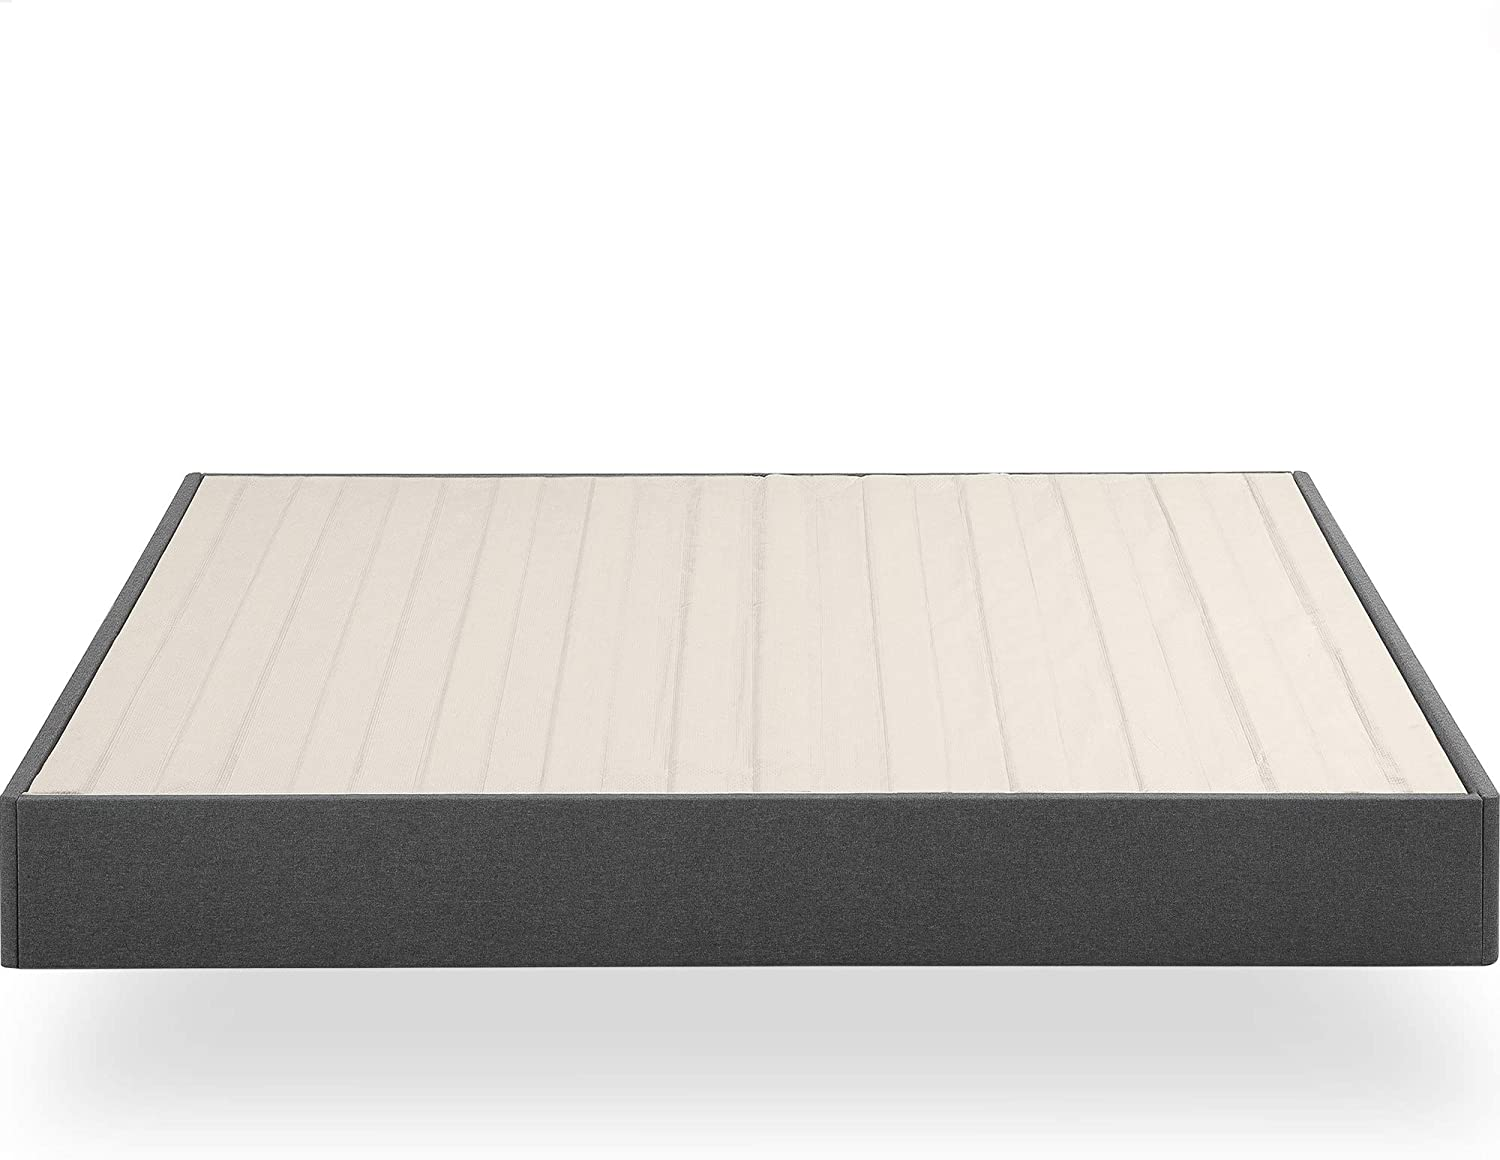 ZINUS Upholstered Metal Box Spring with Wood Slats / 9 Inch Mattress Foundation / Easy Assembly / Fabric Paneled Design, Queen: Furniture & Decor